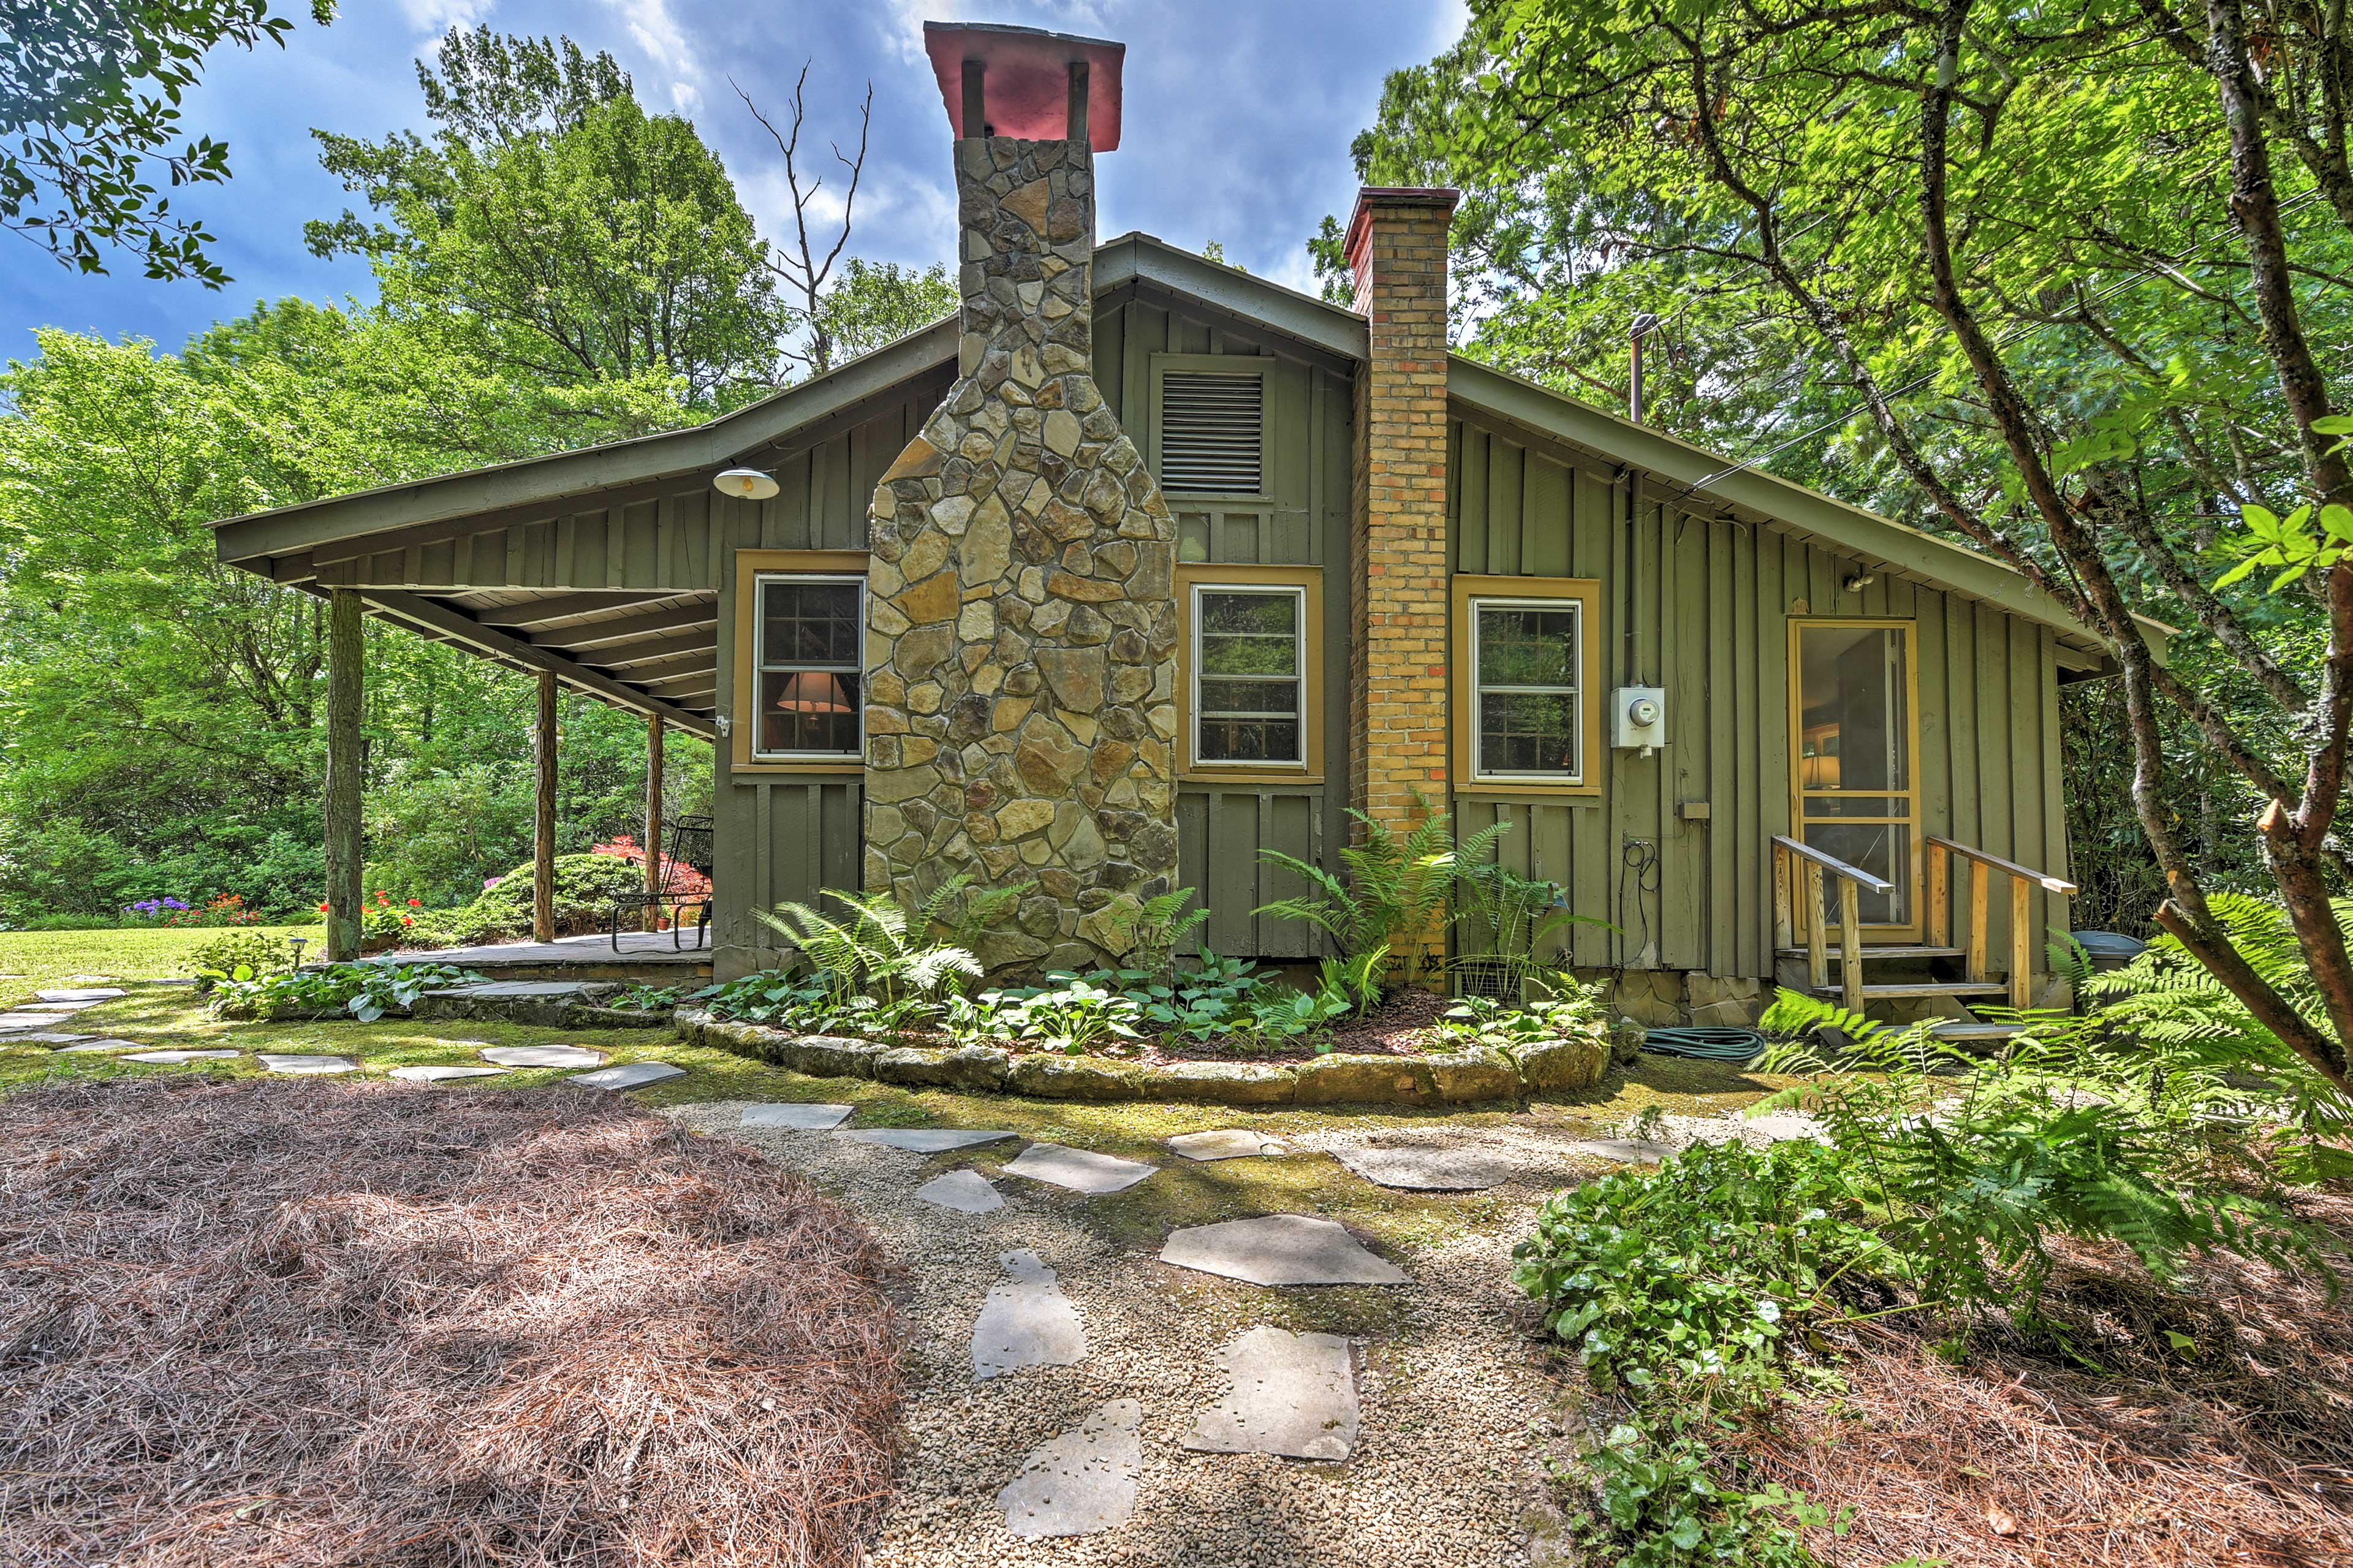 Fall in love with this beautiful Highlands vacation rental cottage!